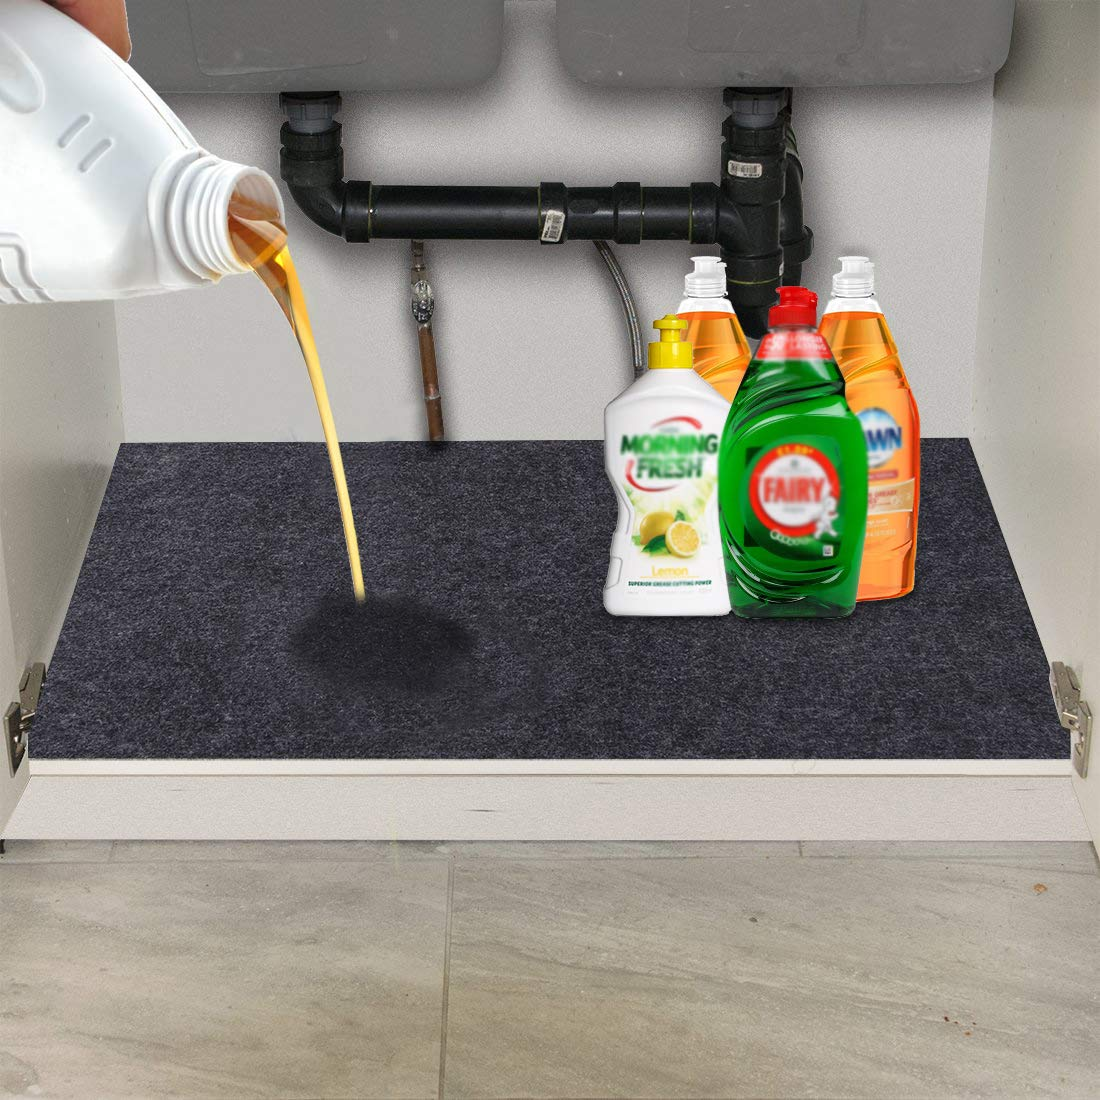 Under The Sink Mat,Kitchen Tray Drip,Cabinet,Absorbent Felt Layer Material,Backing Waterproof(36inches x 24inches) by CONVELIFE